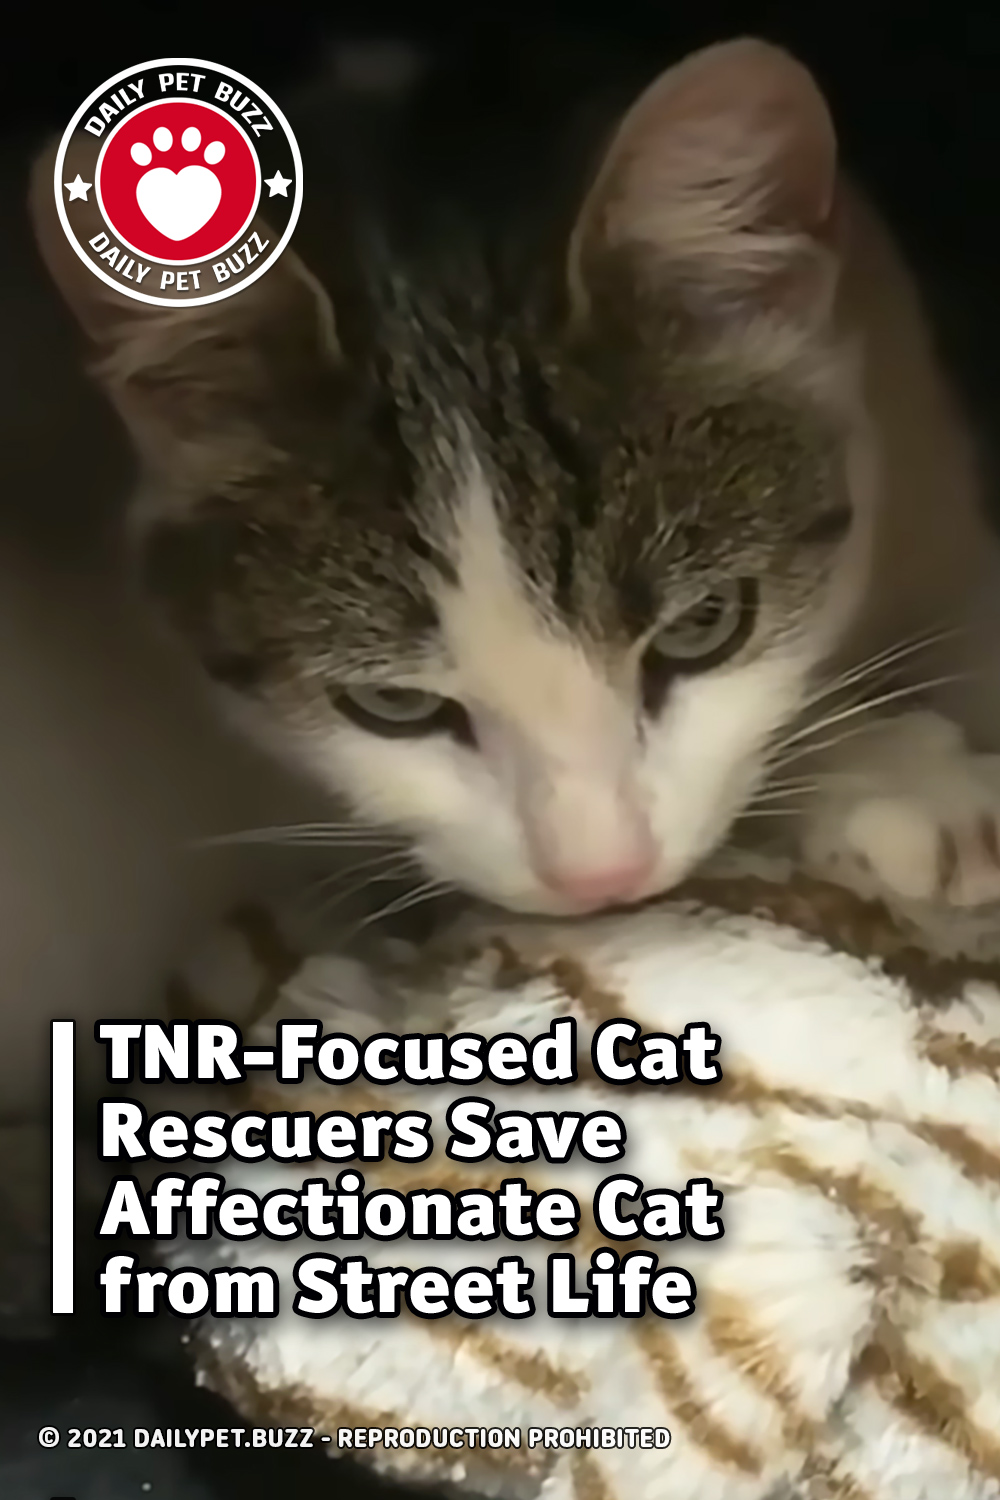 TNR-Focused Cat Rescuers Save Affectionate Cat from Street Life